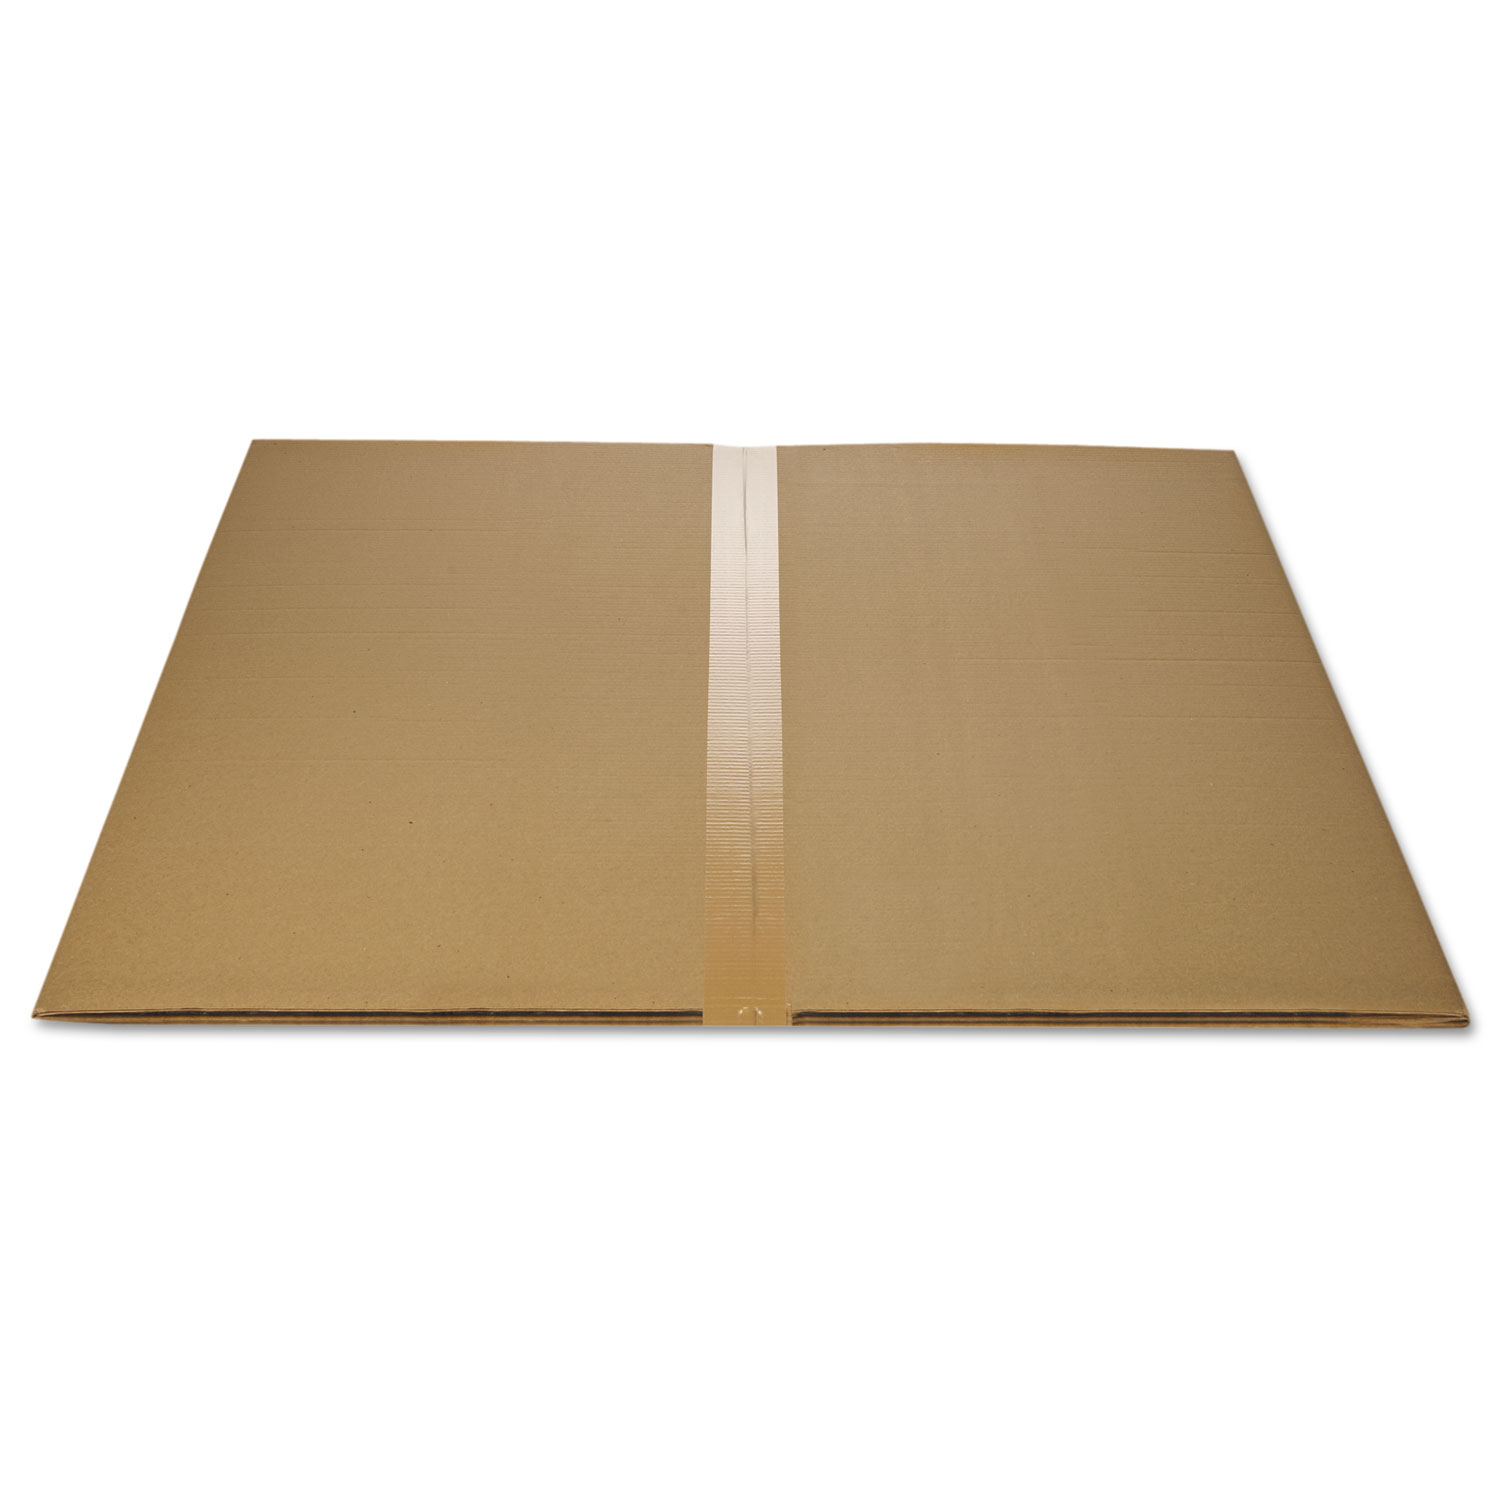 Economat All Day Use Chair Mat For Hard Floors By Deflecto